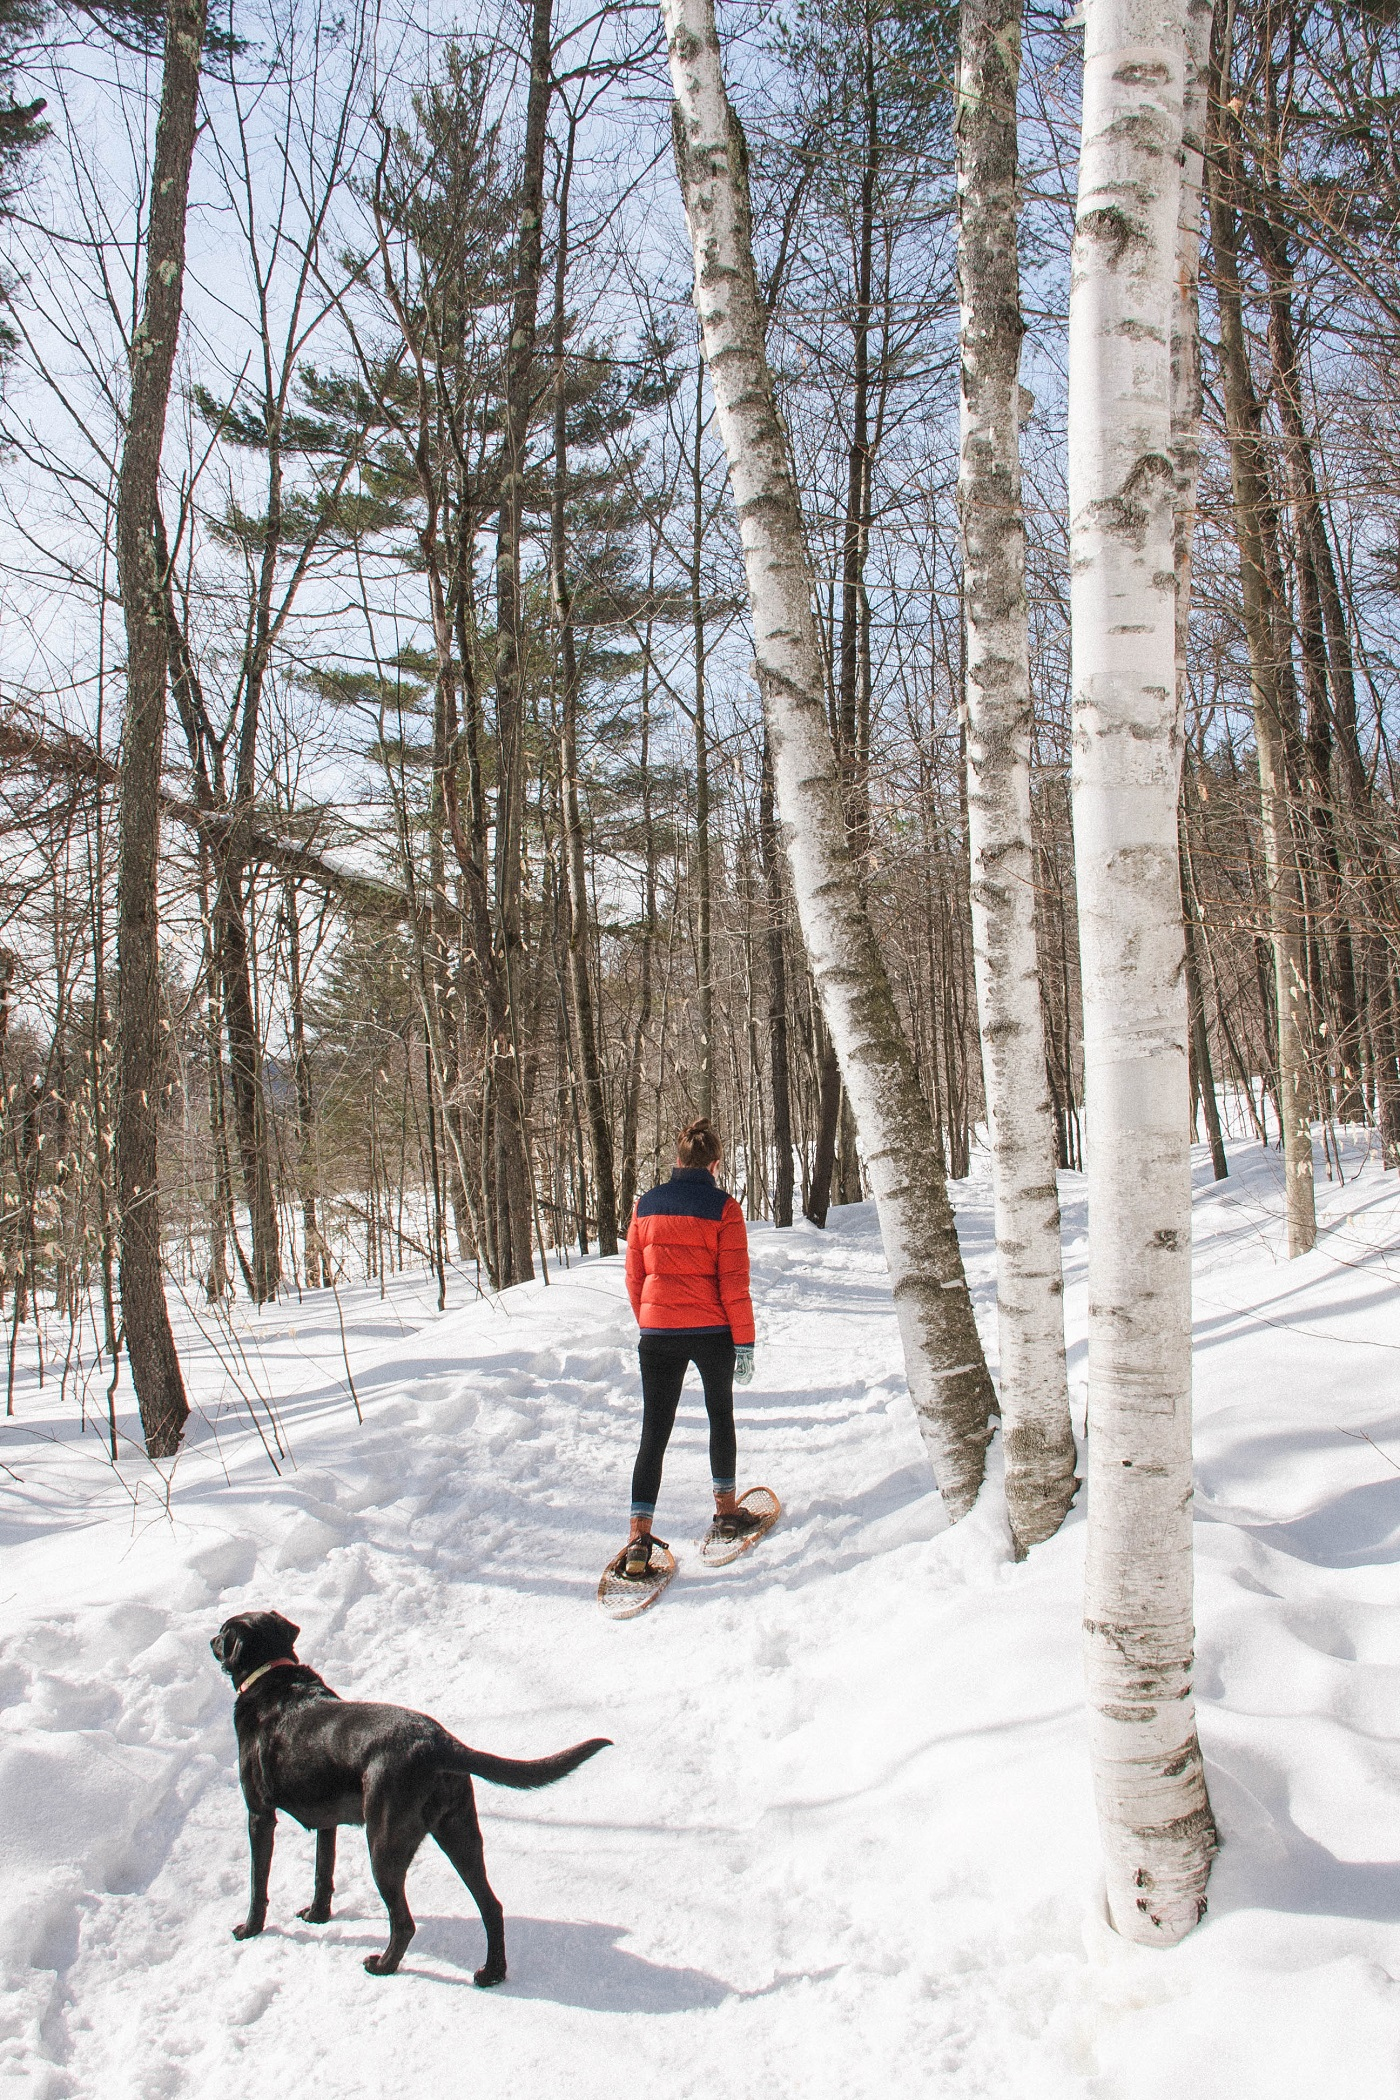 Snowshoeing in Stowe, VT